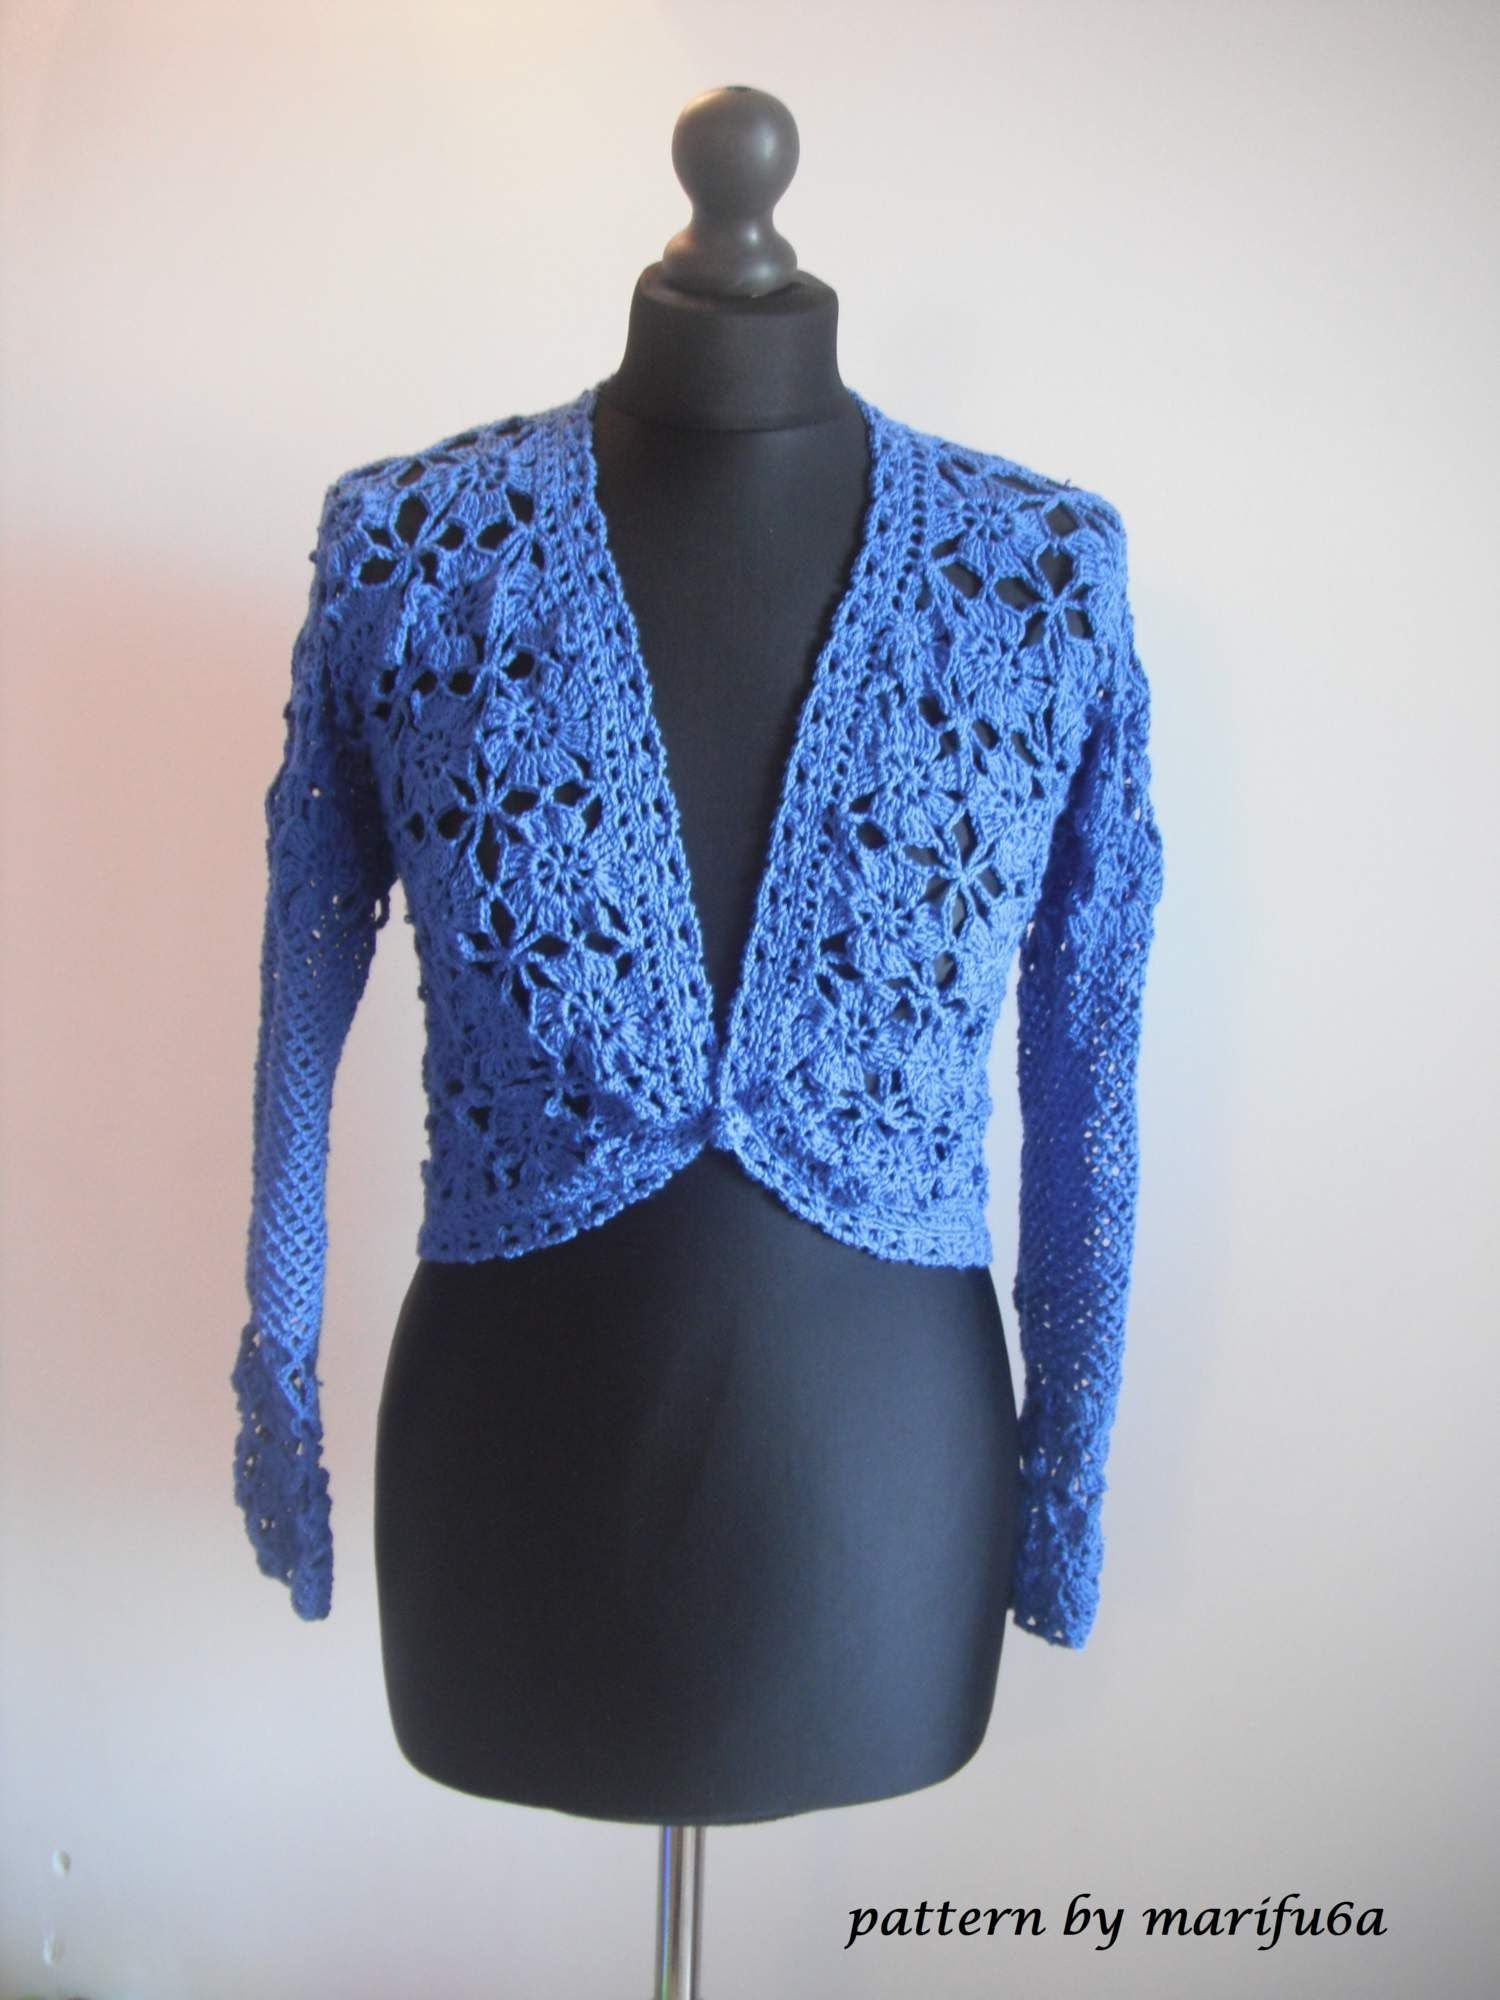 Crochet Boleros Patterns Elegant How to Crochet Elegant Jacket Bolero Free Pattern Tutorial Of Amazing 41 Ideas Crochet Boleros Patterns